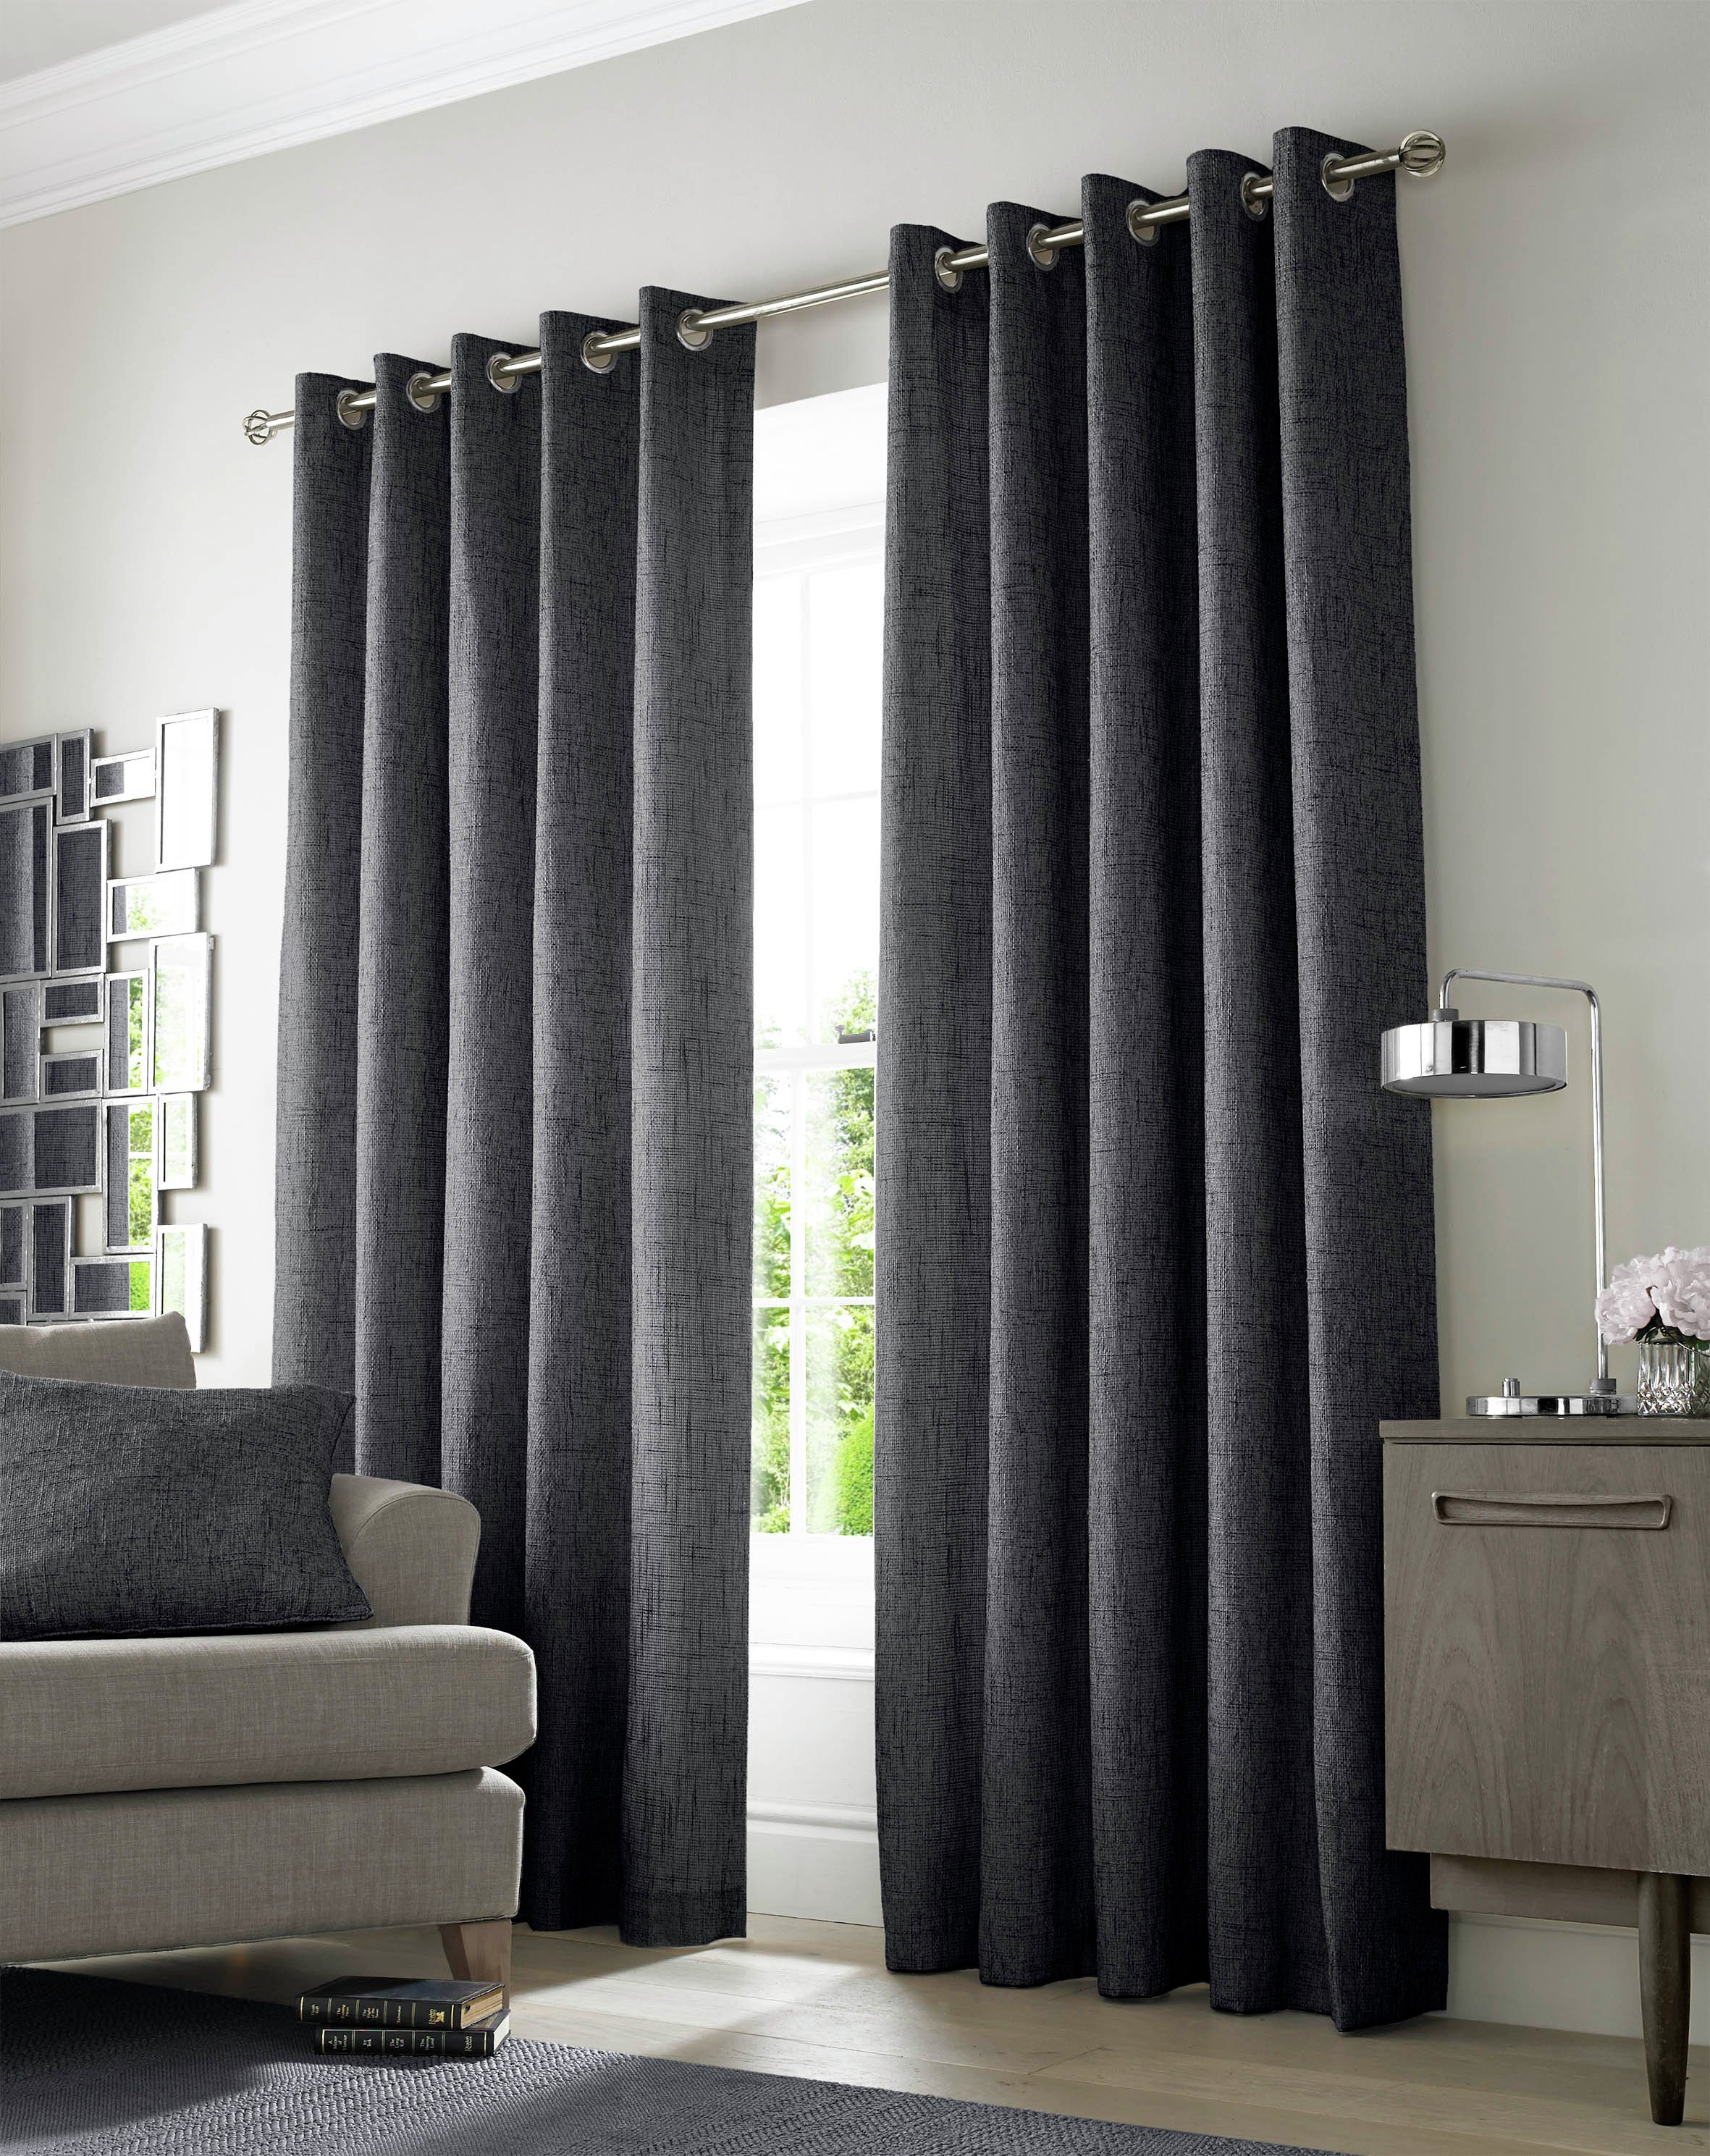 Image of Academy Eyelet Curtains - 117x137cm - Charcoal.